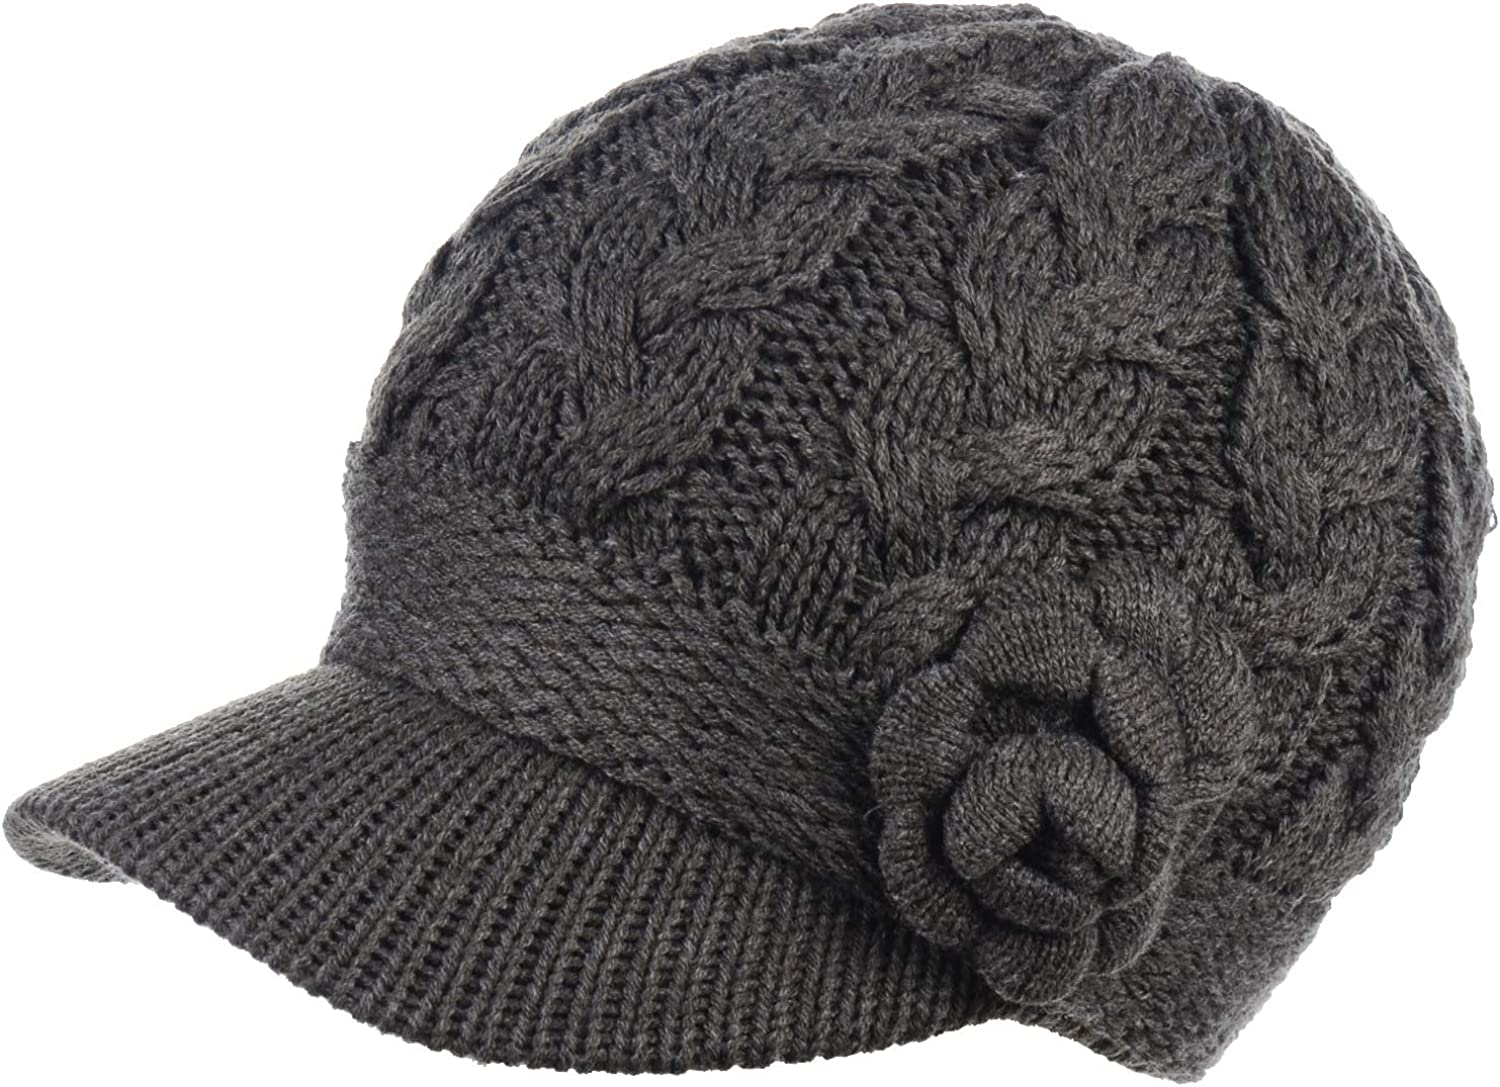 Cash special price Womens Winter Wholesale Elegant Cable Flower Knitted Cabbie Newsboy Cap Be